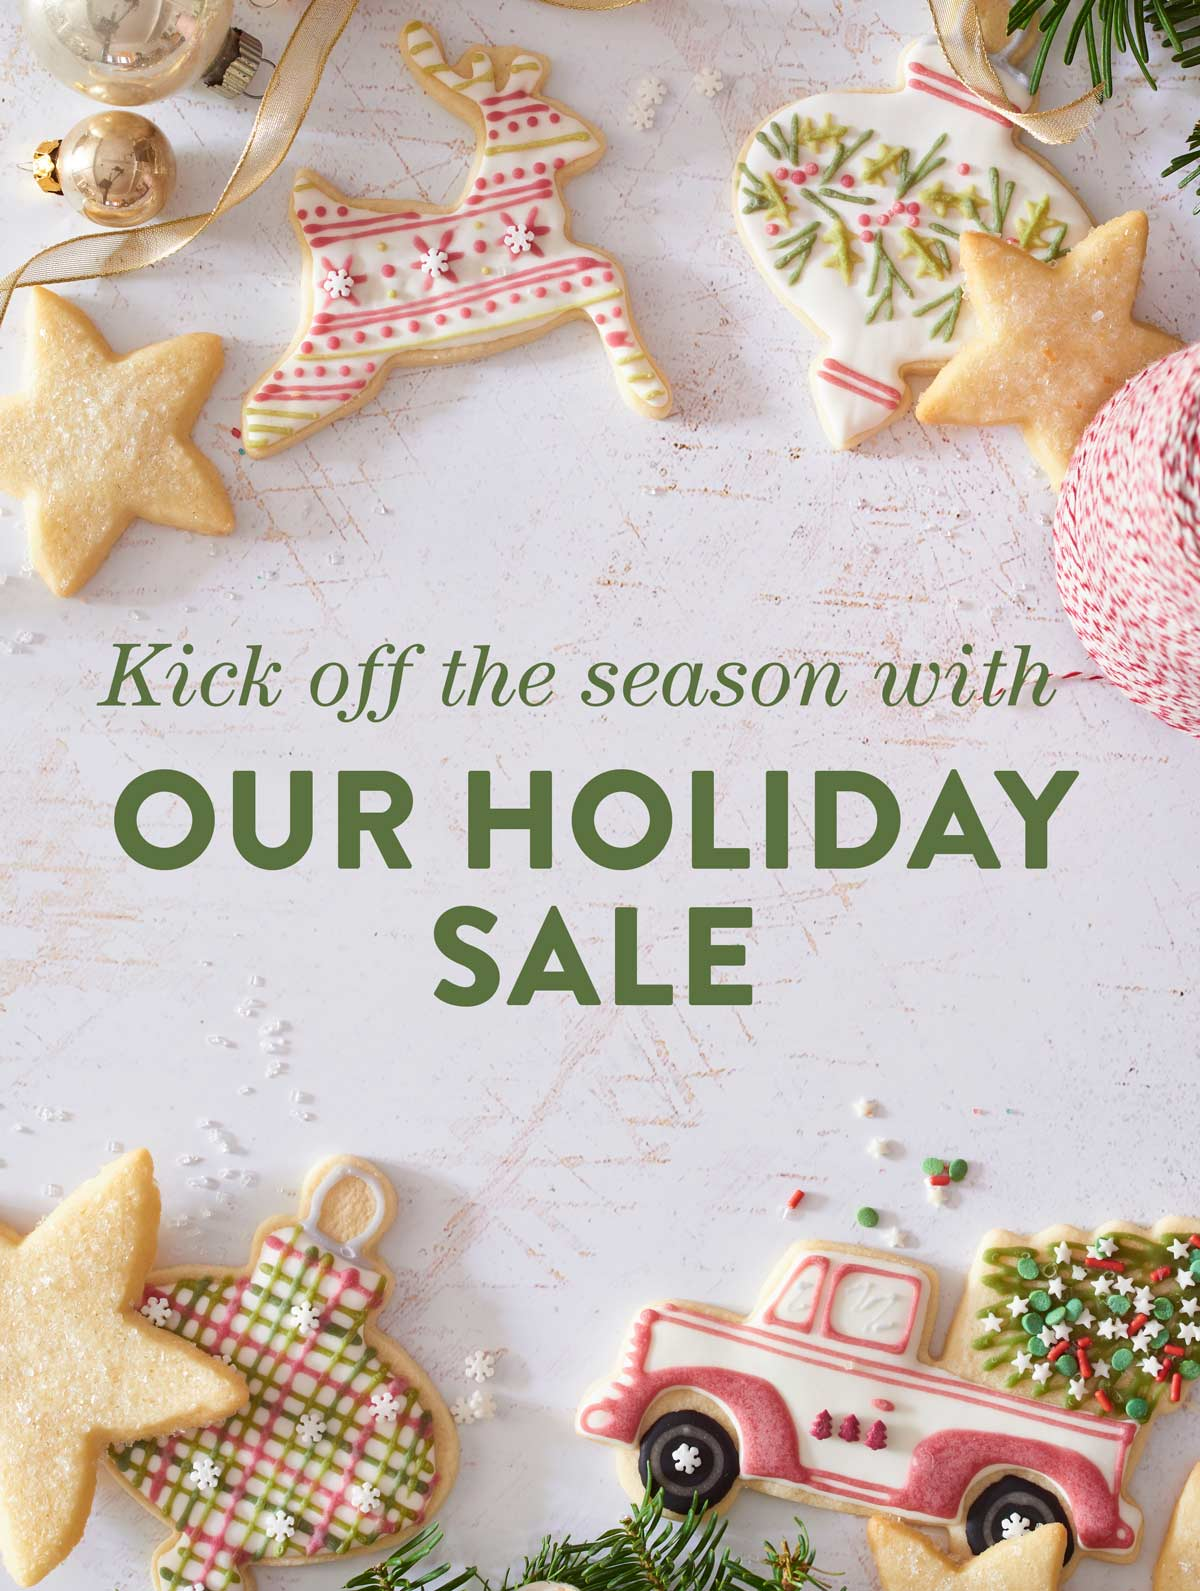 Kick off the season with our Holiday Sale